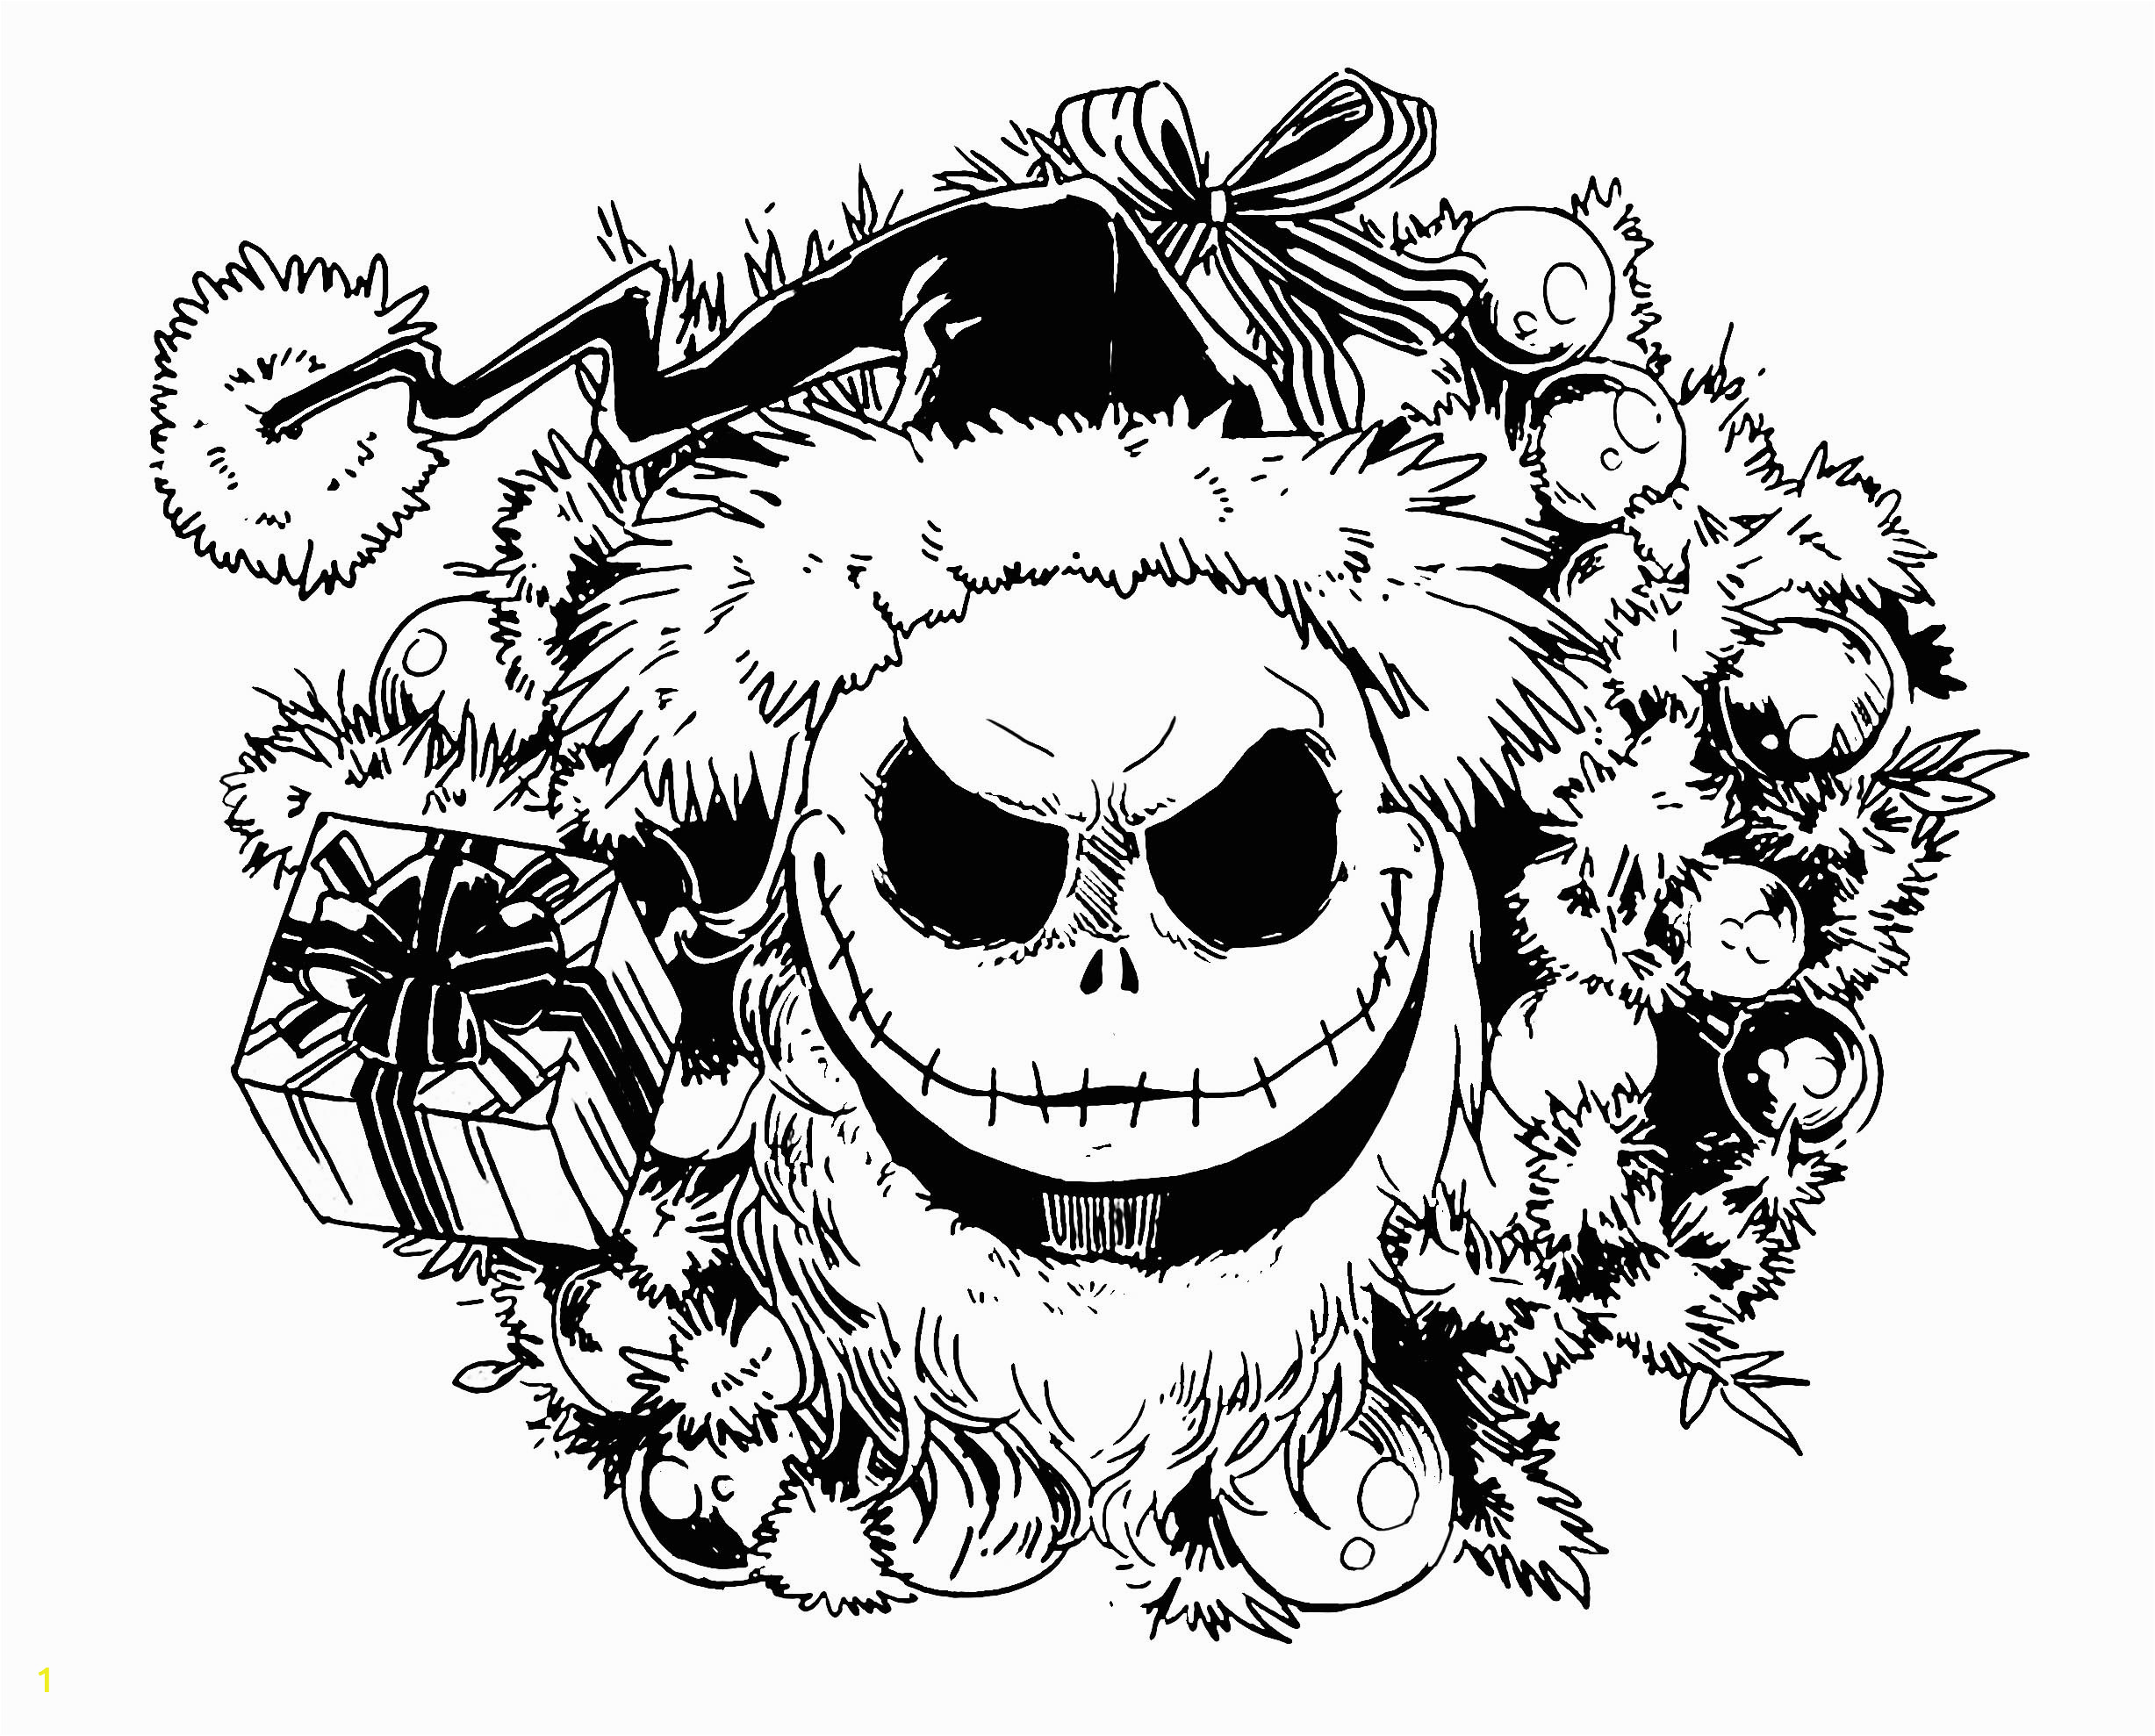 Nightmare before Christmas Adult Coloring Pages Nighmare before Christmas Christmas Adult Coloring Pages